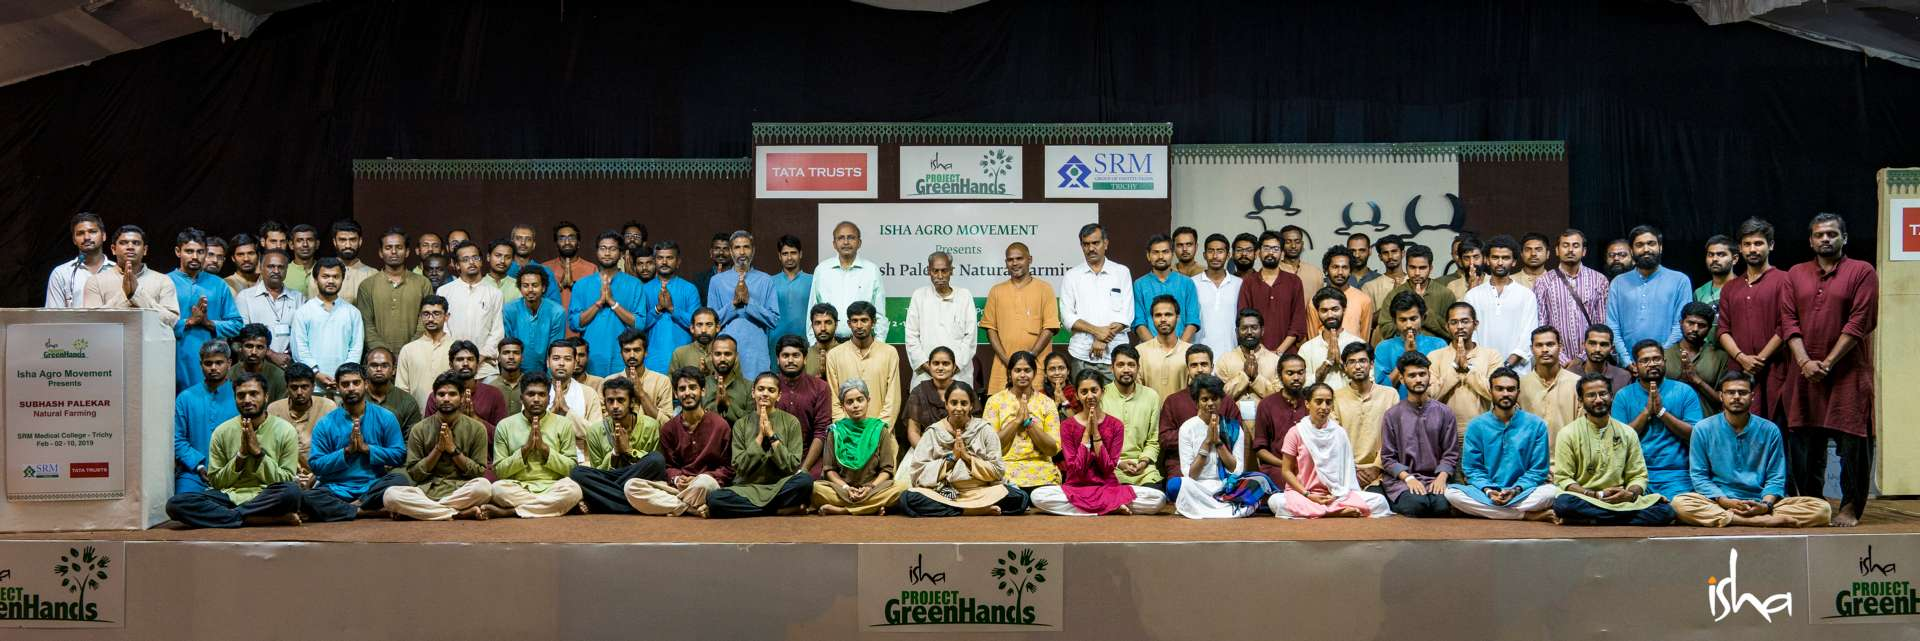 RFR team at Trichy Training Session of Shri. Subhash Palekar